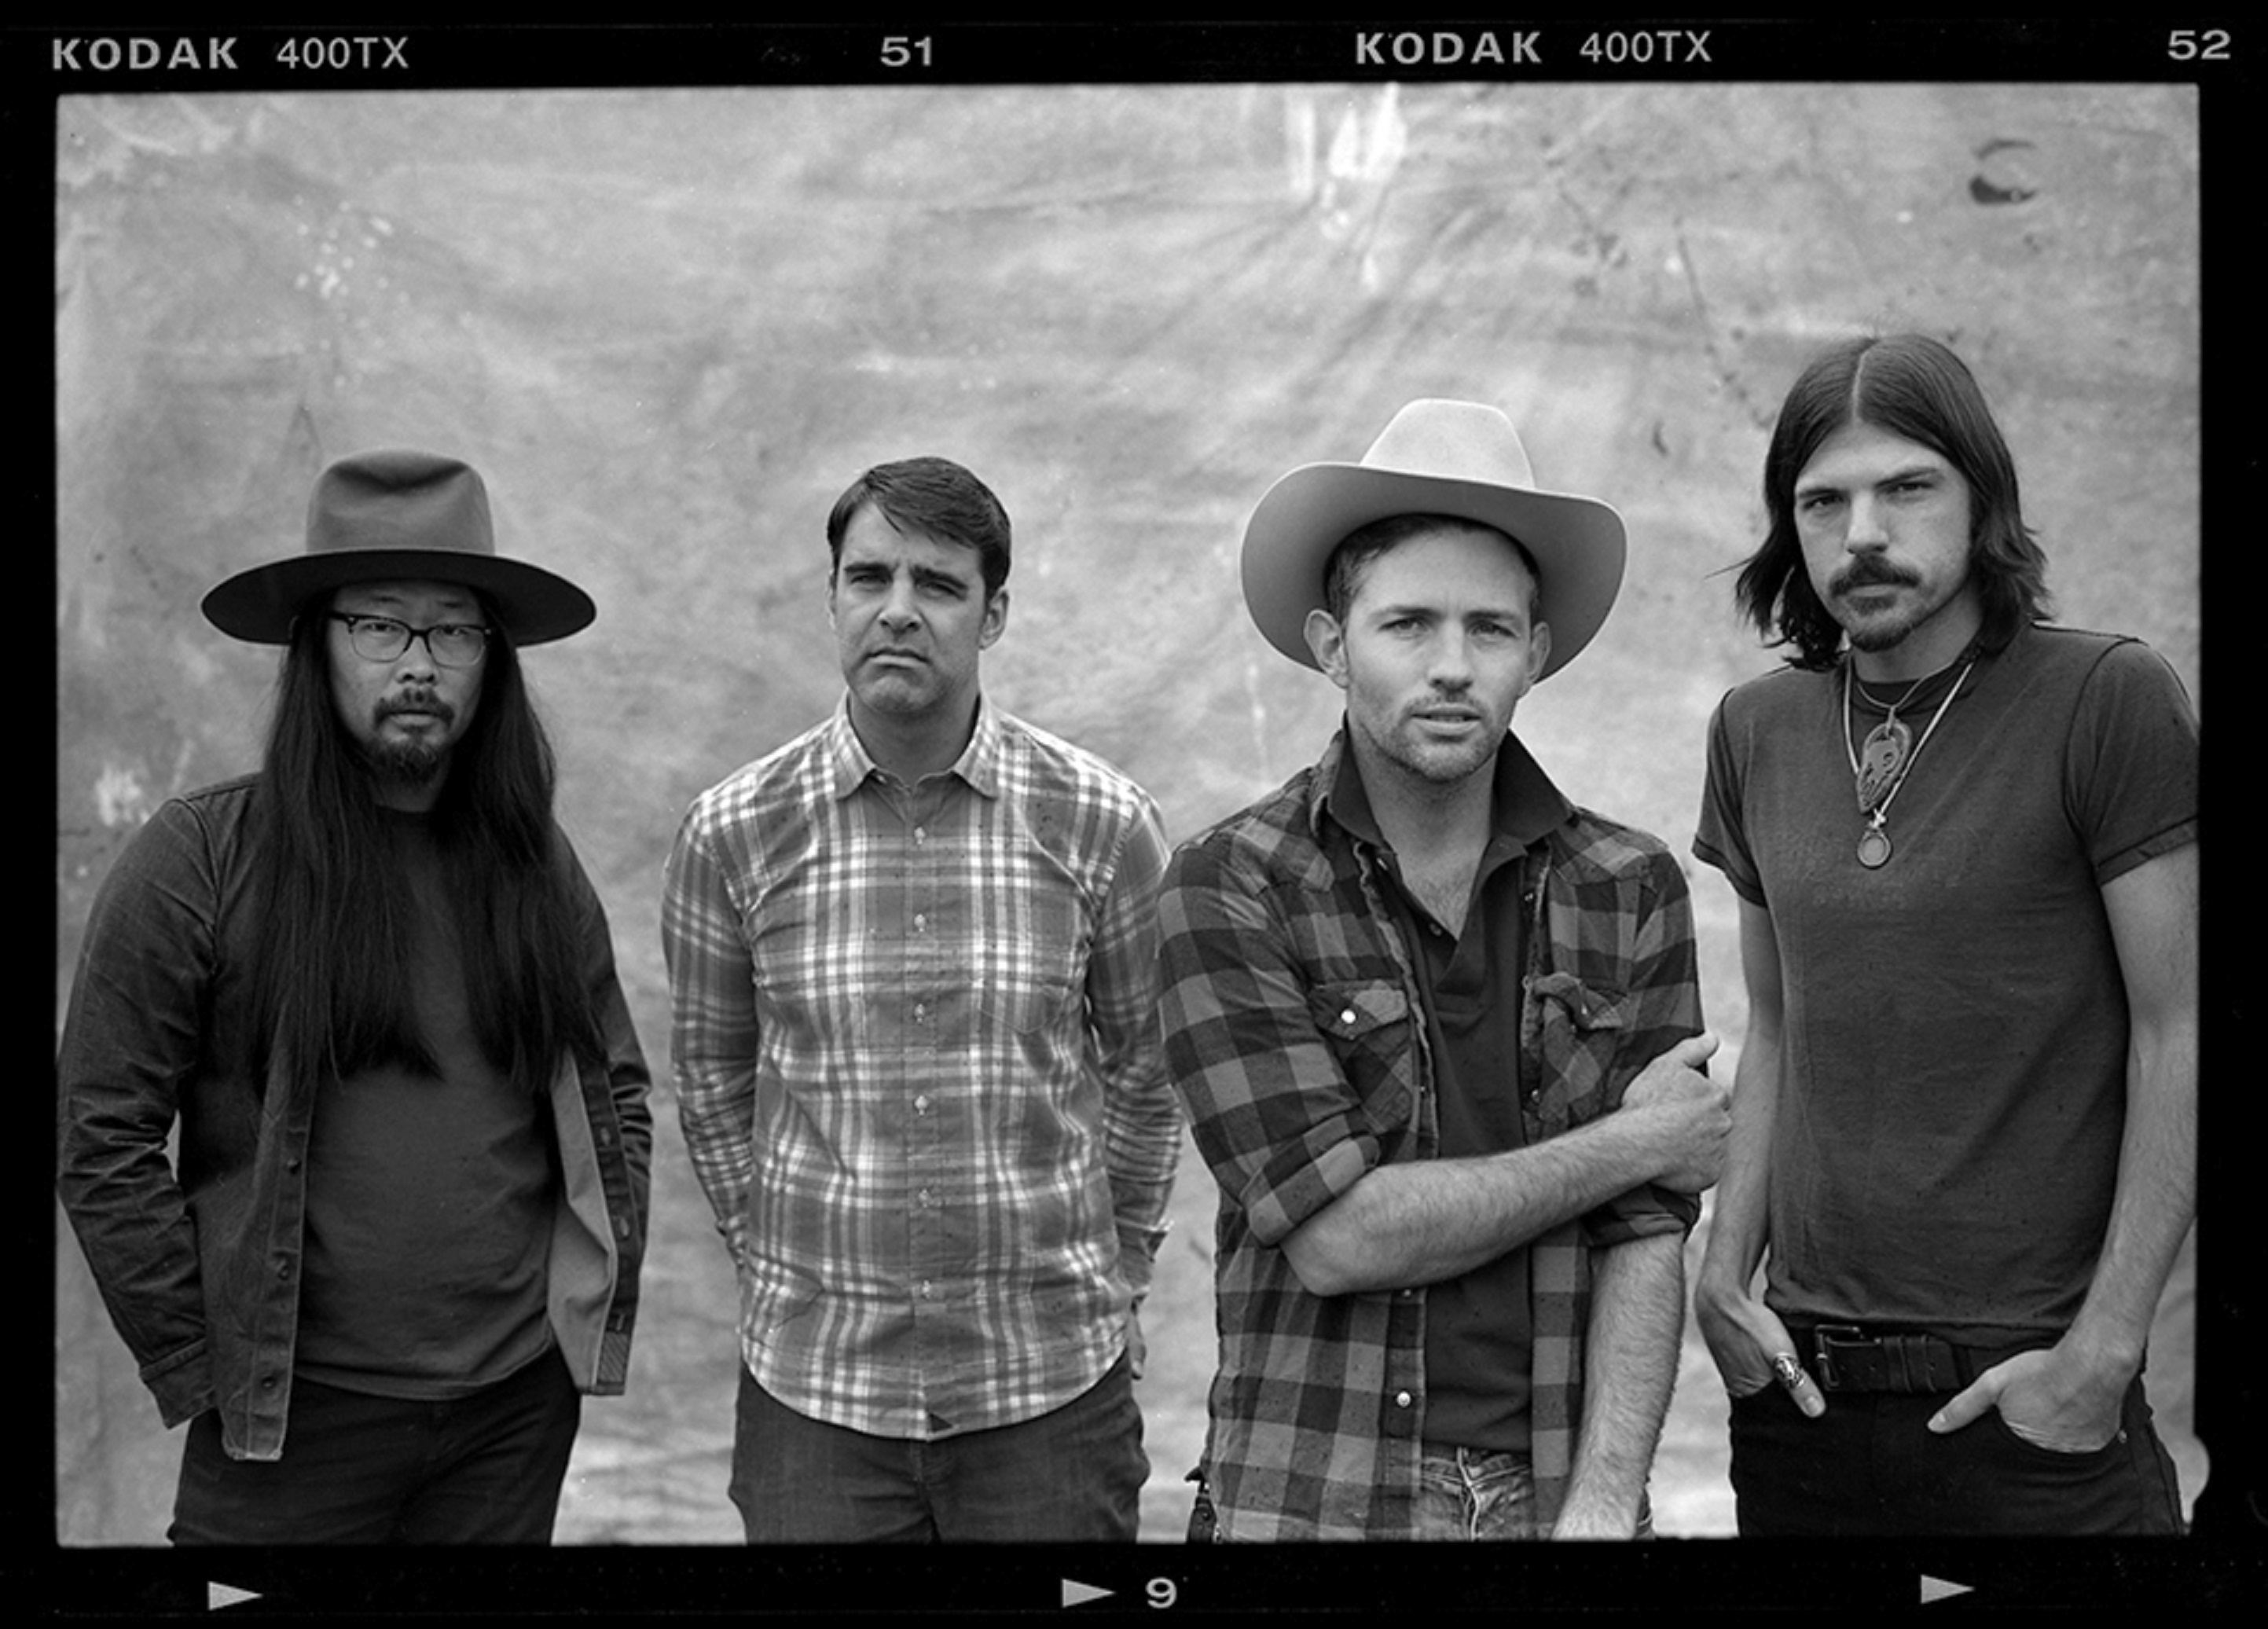 THE AVETT BROTHERS SELL OUT ANNUAL 3-NIGHT STINT AT RED ROCKS AMPHITHEATRE FOR 7TH YEAR IN A ROW